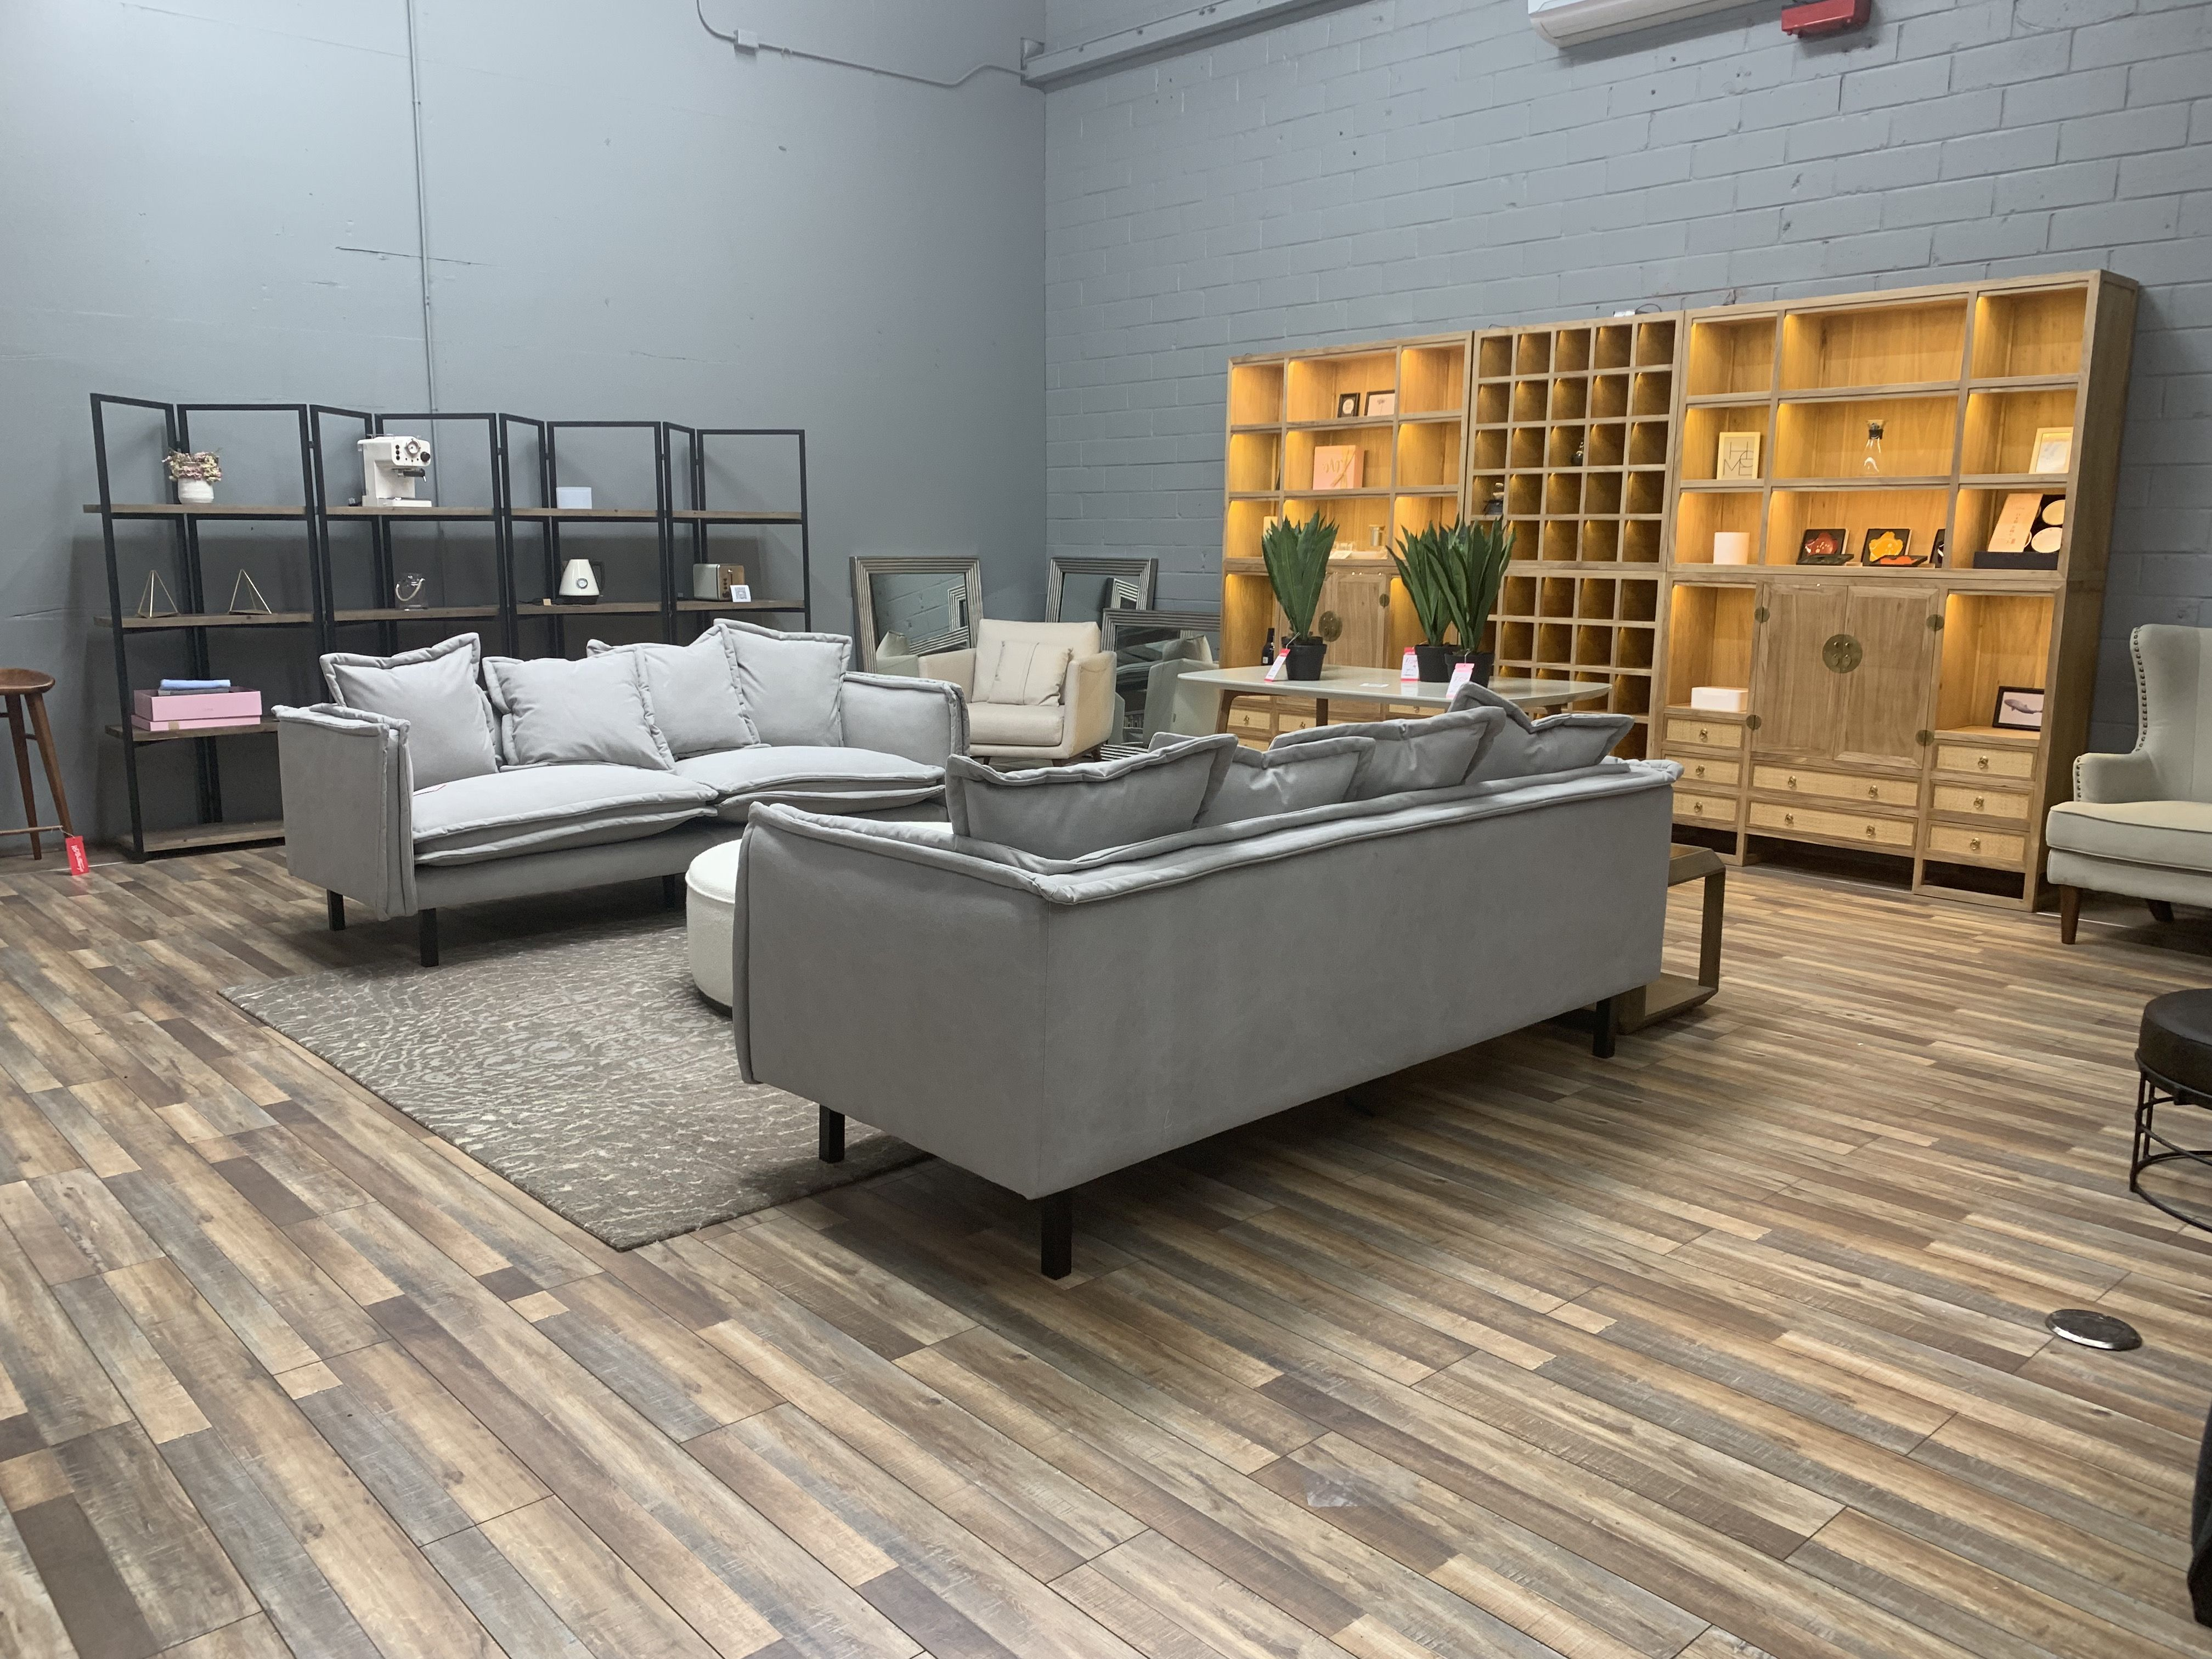 Come And Visit Our Showroom In The City Of Industry And See Ideal Furniture And Accessories On Display Modern Style Furniture Outdoor Furniture Sets Furniture